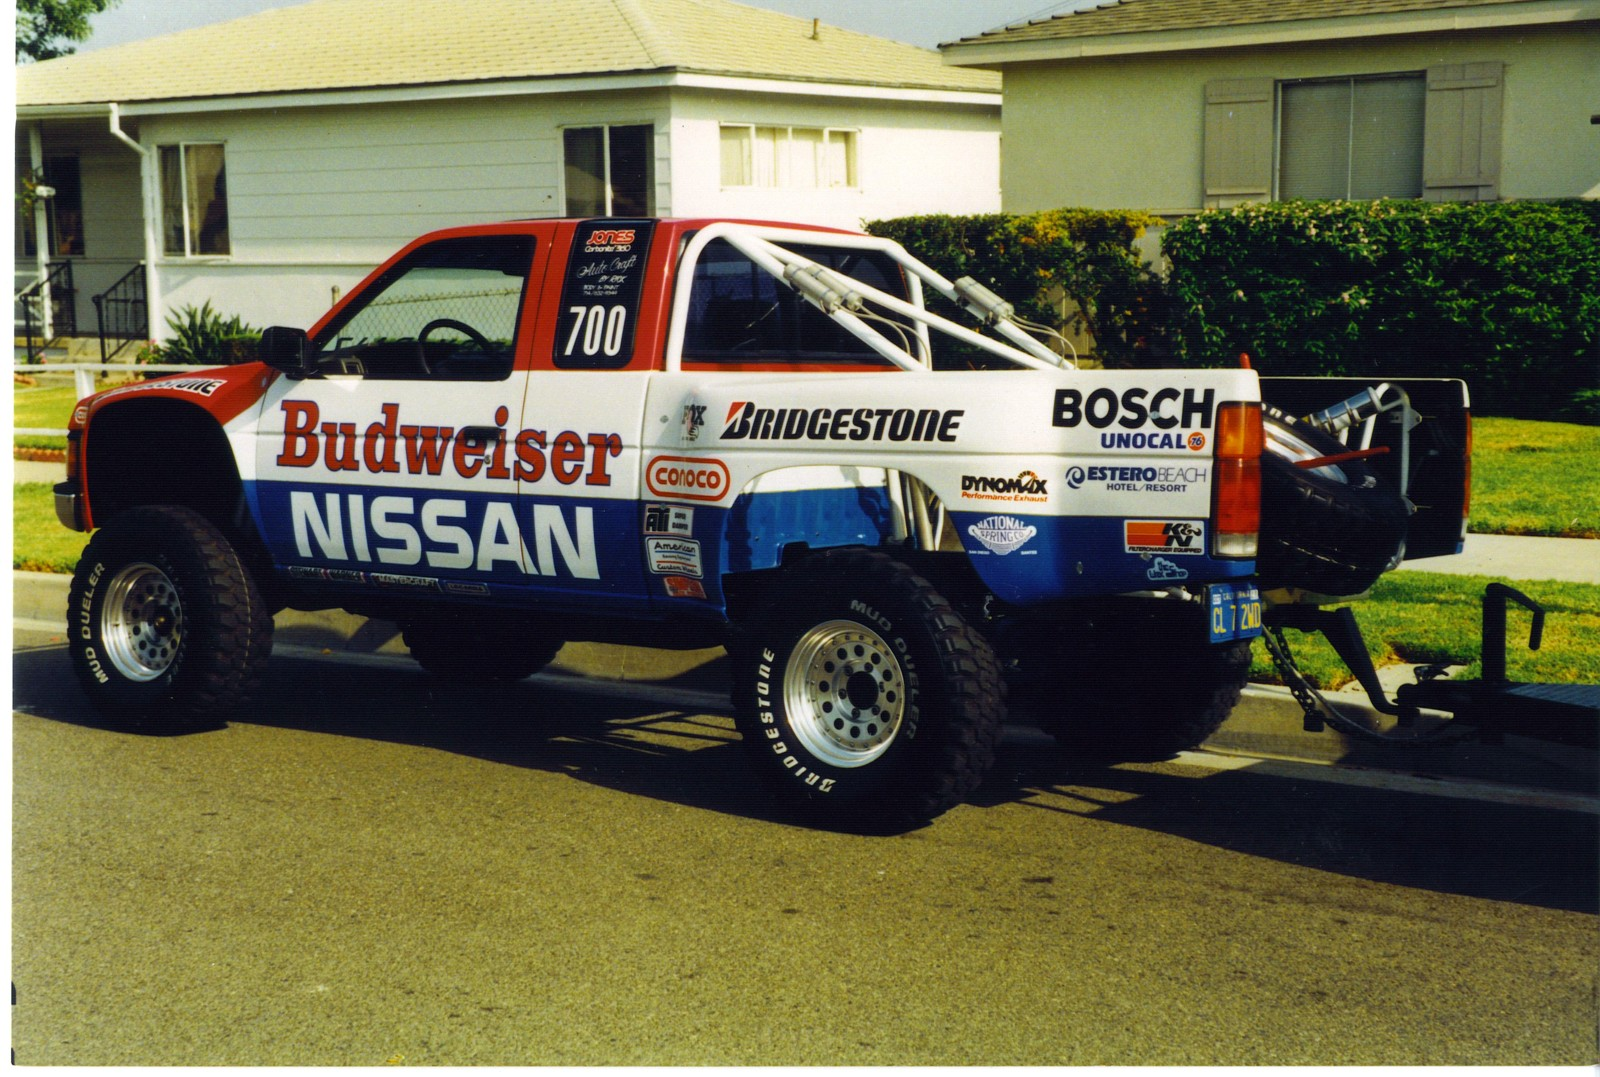 95 nissan hardbody pickup engine compatibility budweiser edit jpg